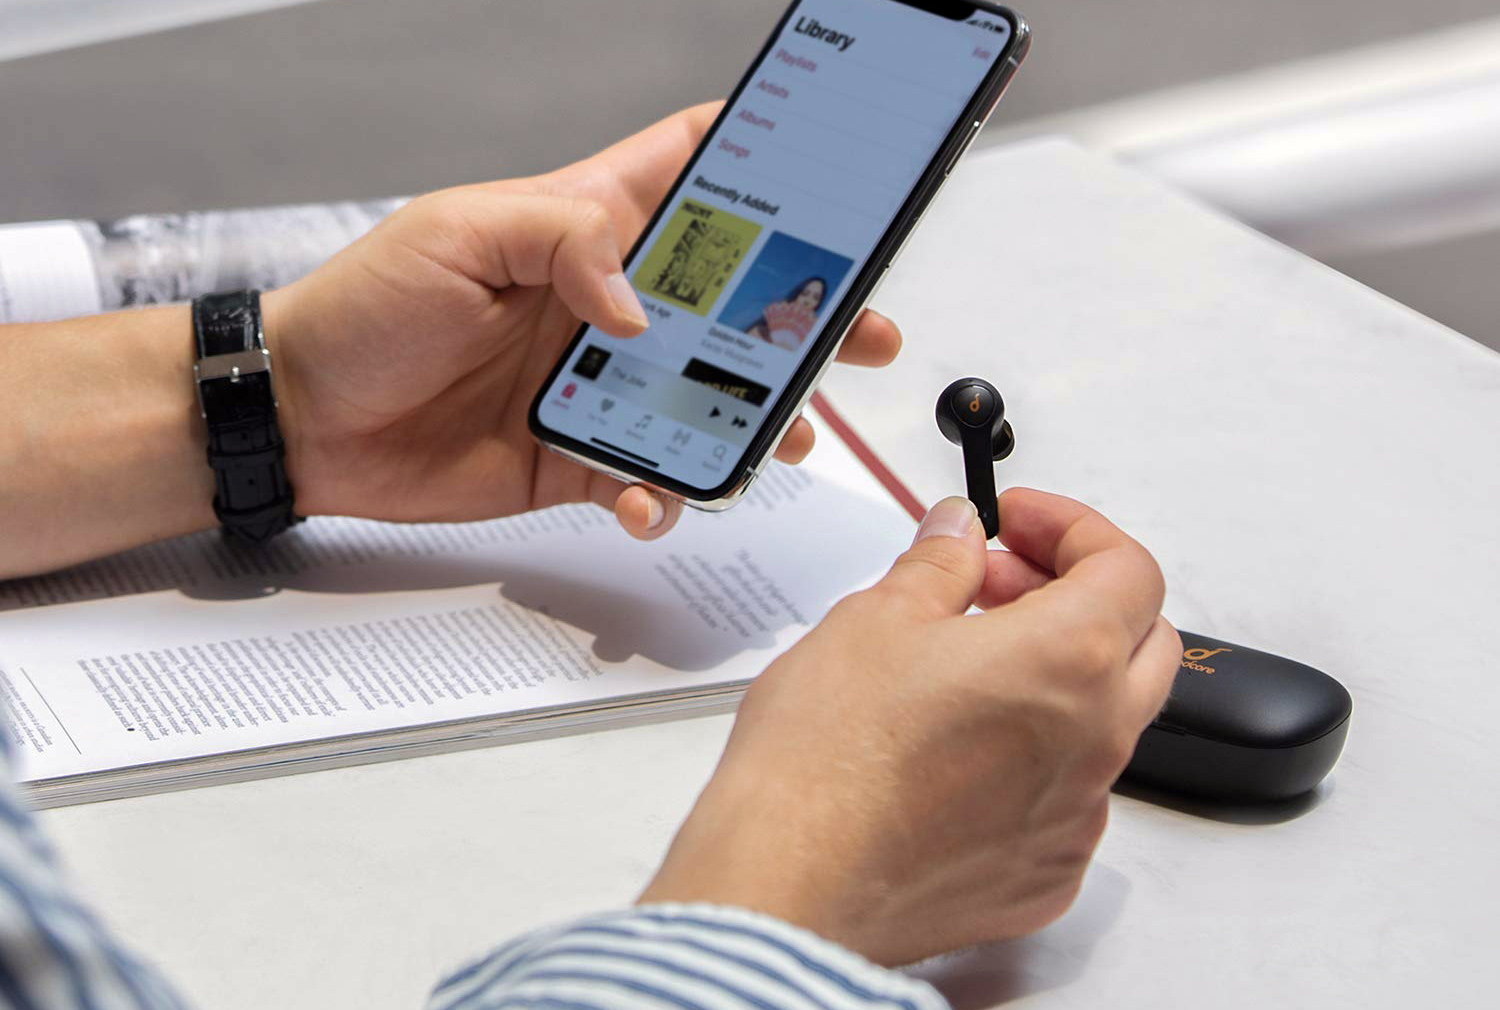 Anker's Soundcore Life P2 earbuds sound better than AirPods for $47